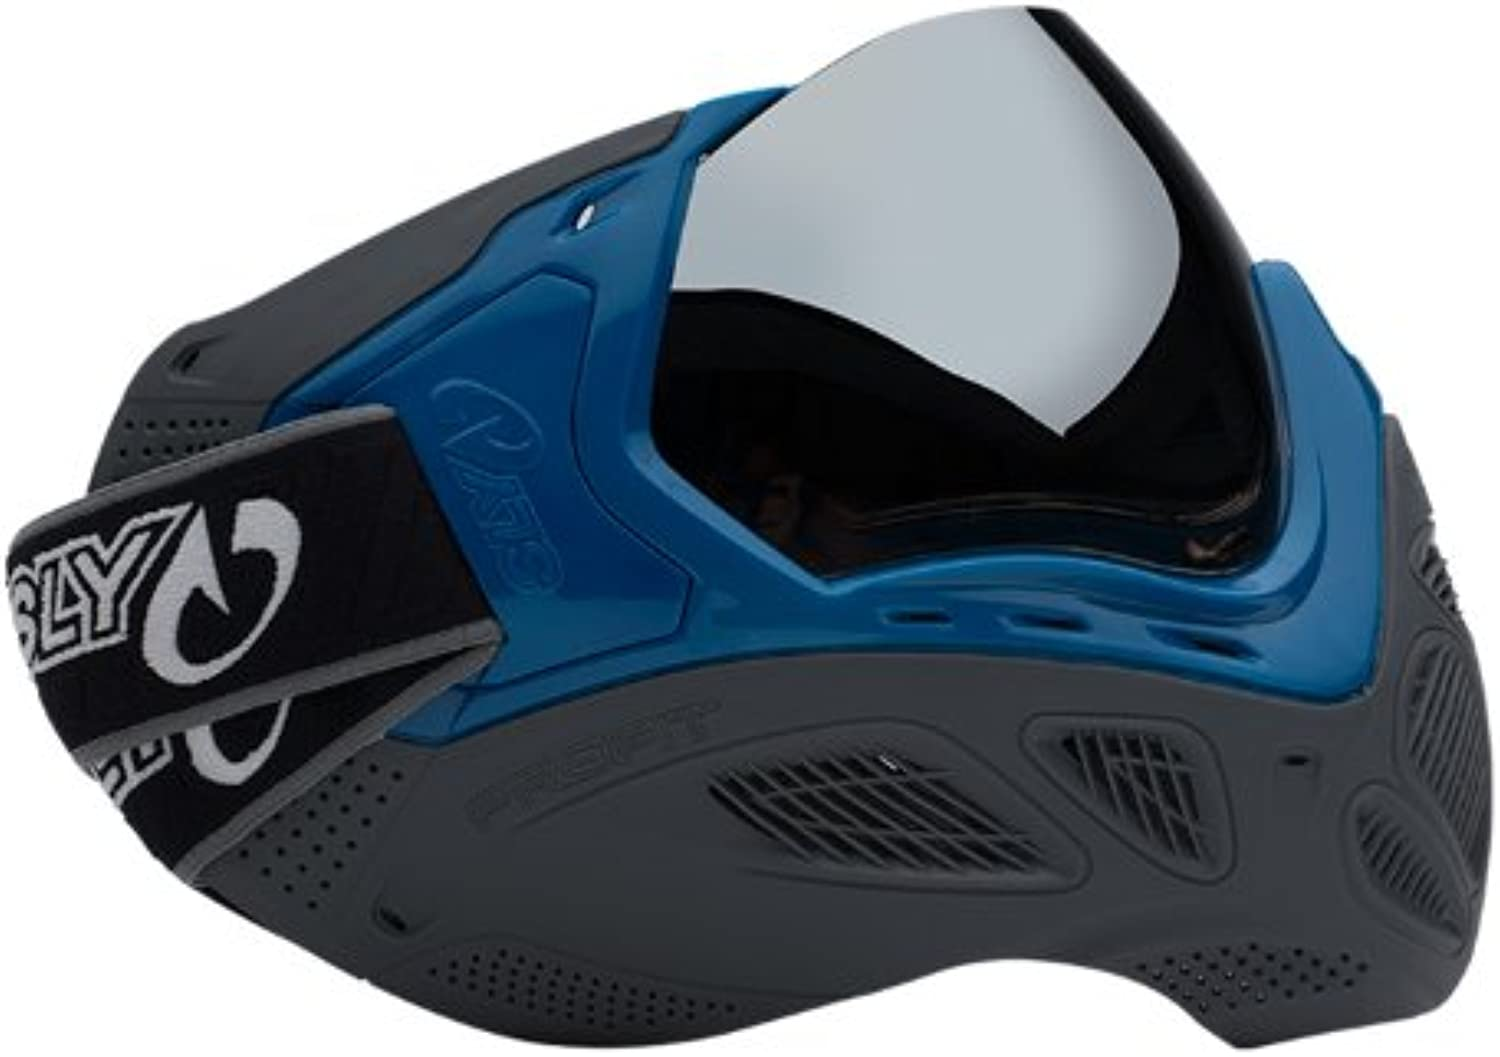 Sly Profit LE Goggles bluee Grey